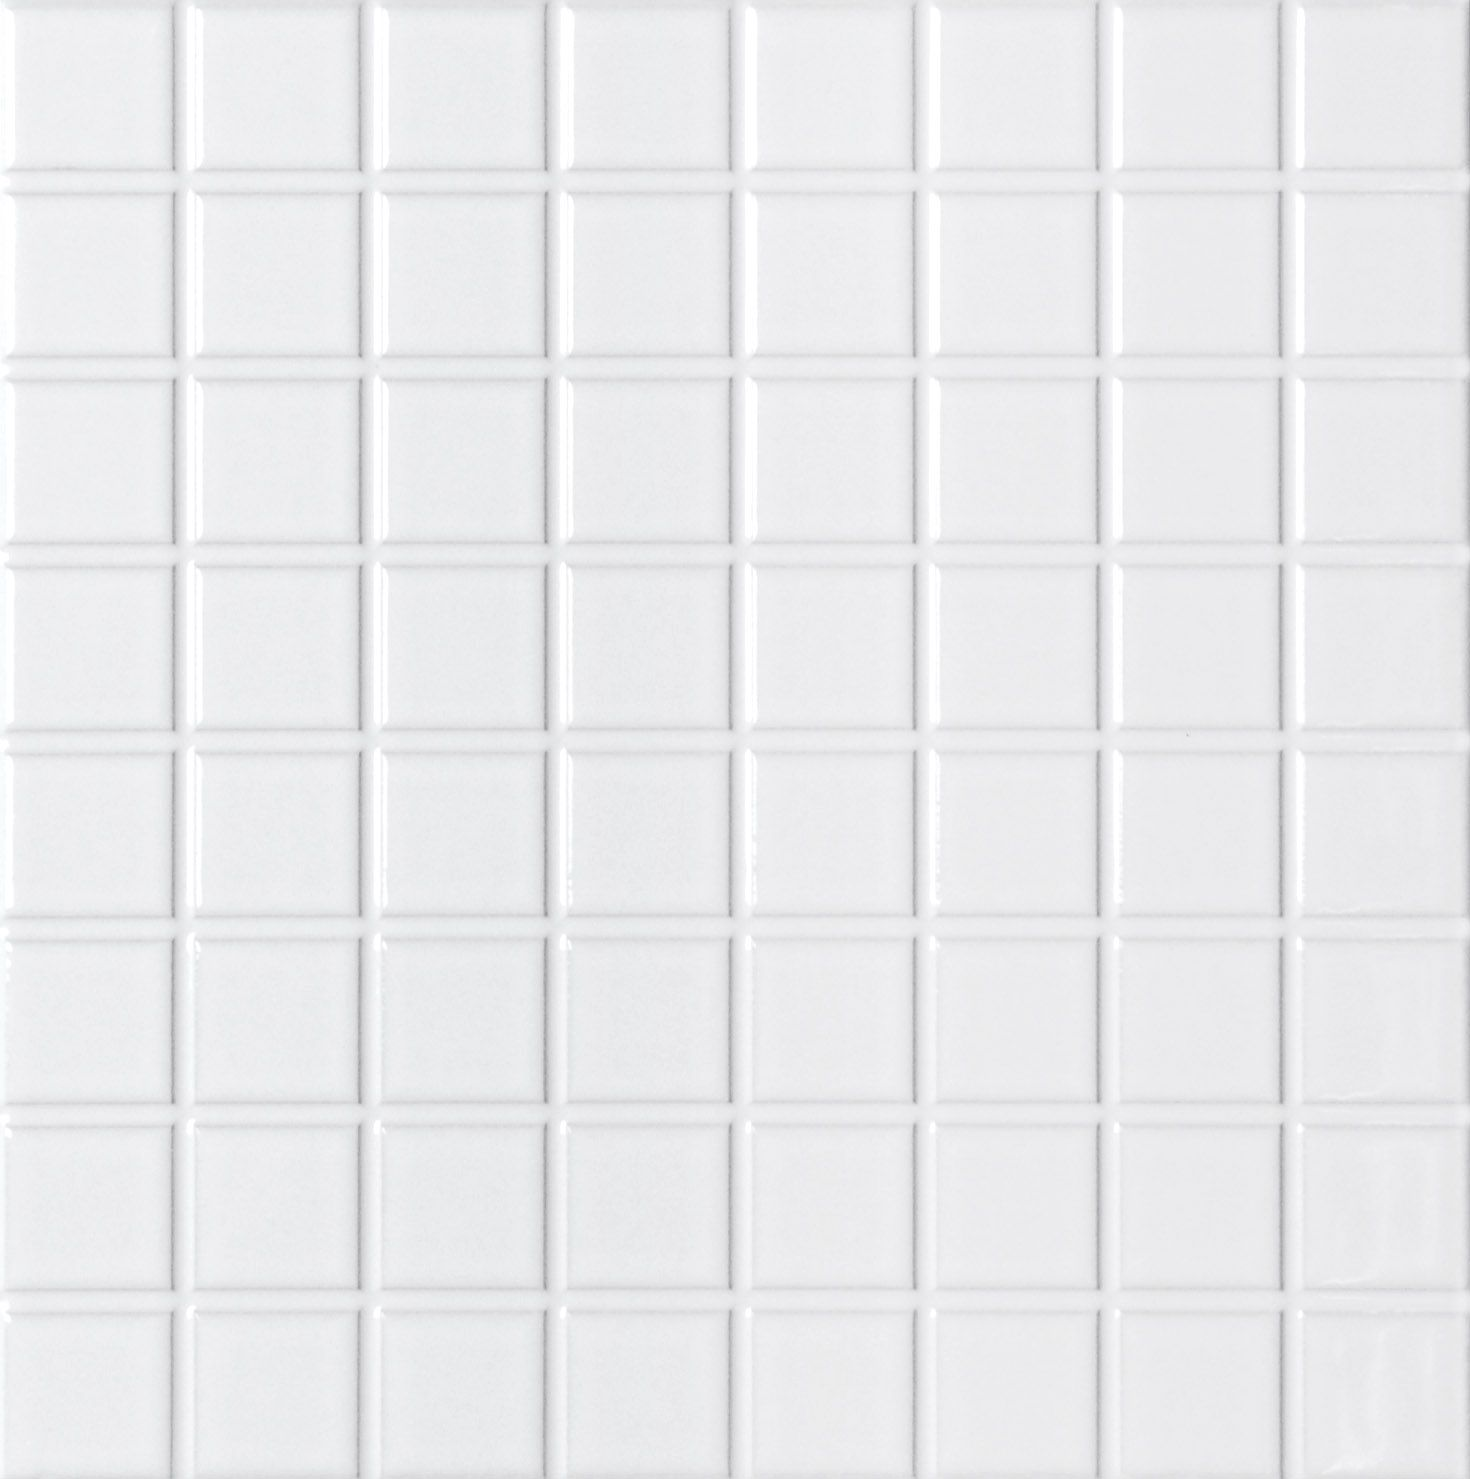 Carrelage sol blanc mat id es de for Carreaux blanc cuisine